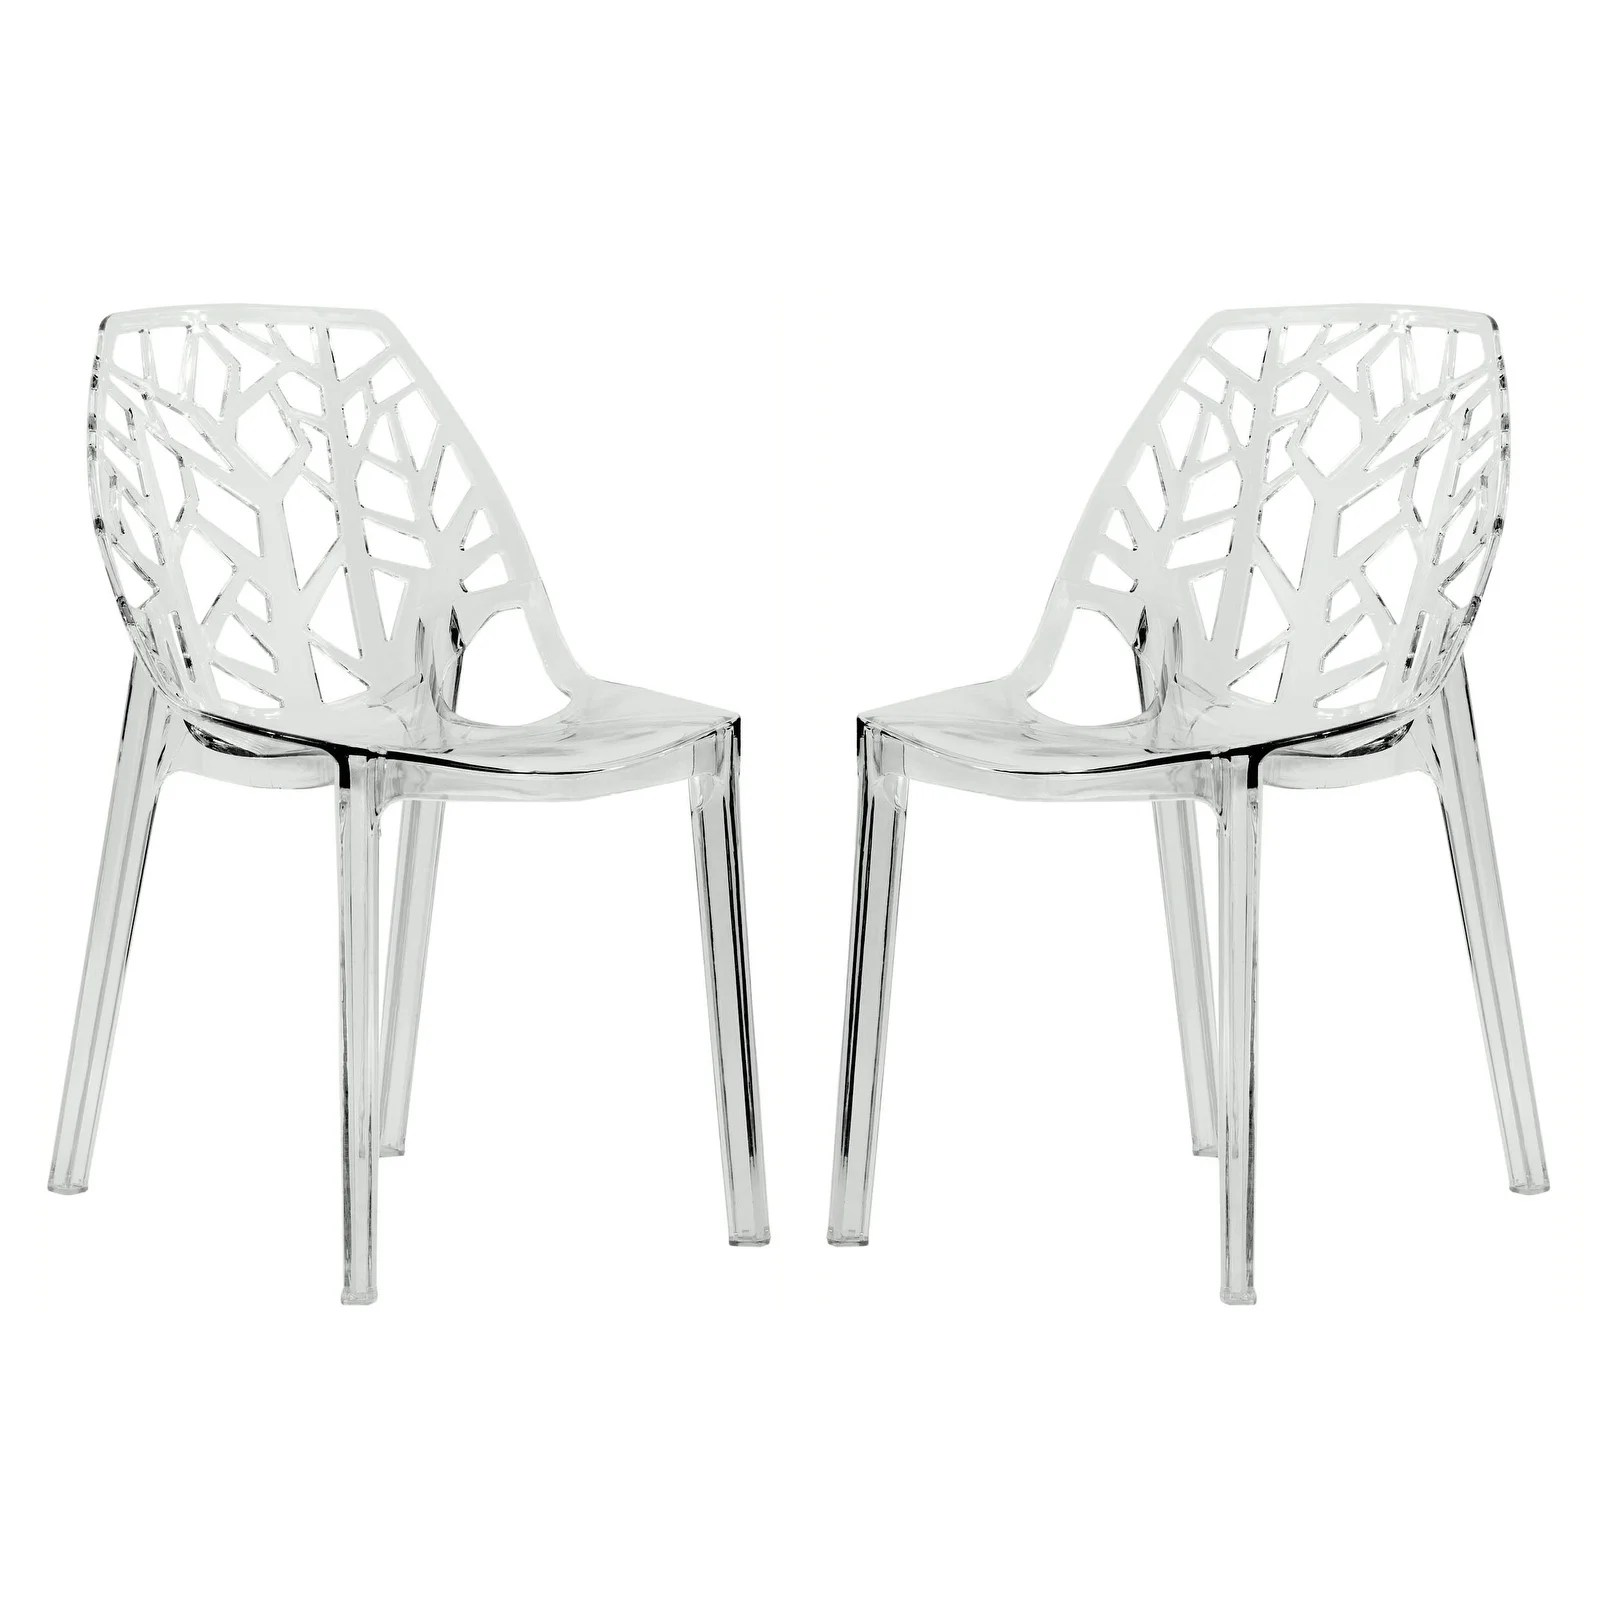 Plastic Clear Chair Details About Leisuremod Modern Flora Clear Cut Out Plastic Dining Chairs N A